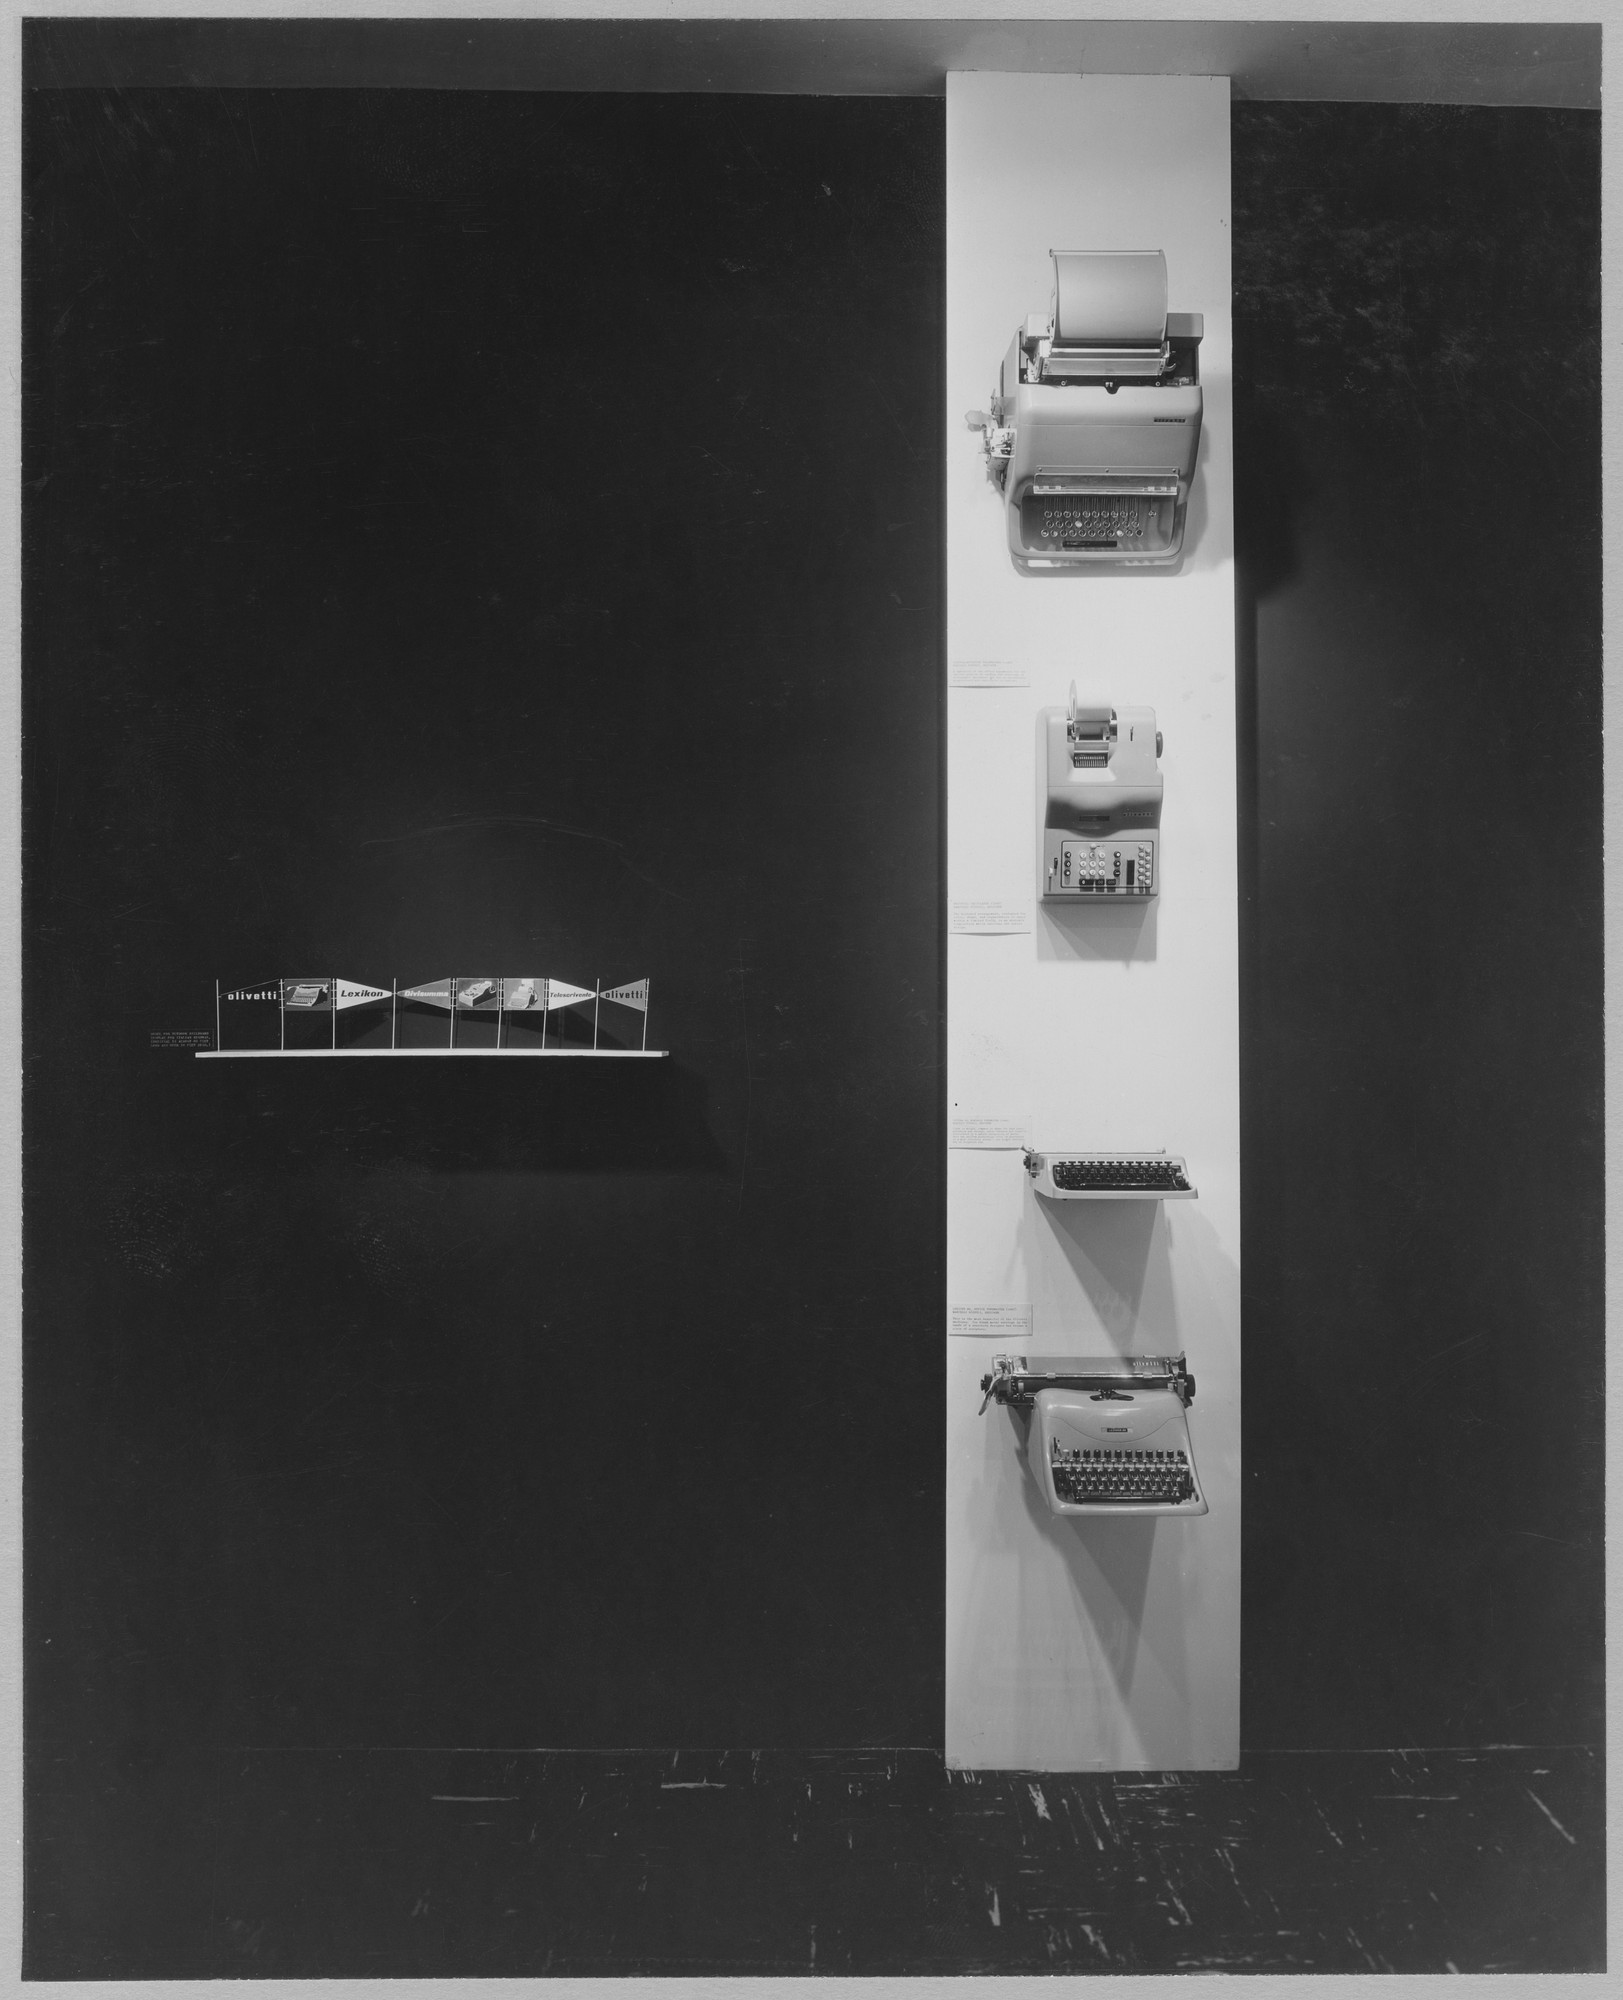 "Installation view of the exhibition, ""Olivetti: Design in Industry."" October 21, 1952–November 30, 1952. Photographic Archive. The Museum of Modern Art Archives, New York. IN523.1. Photograph by Soichi Sunami."